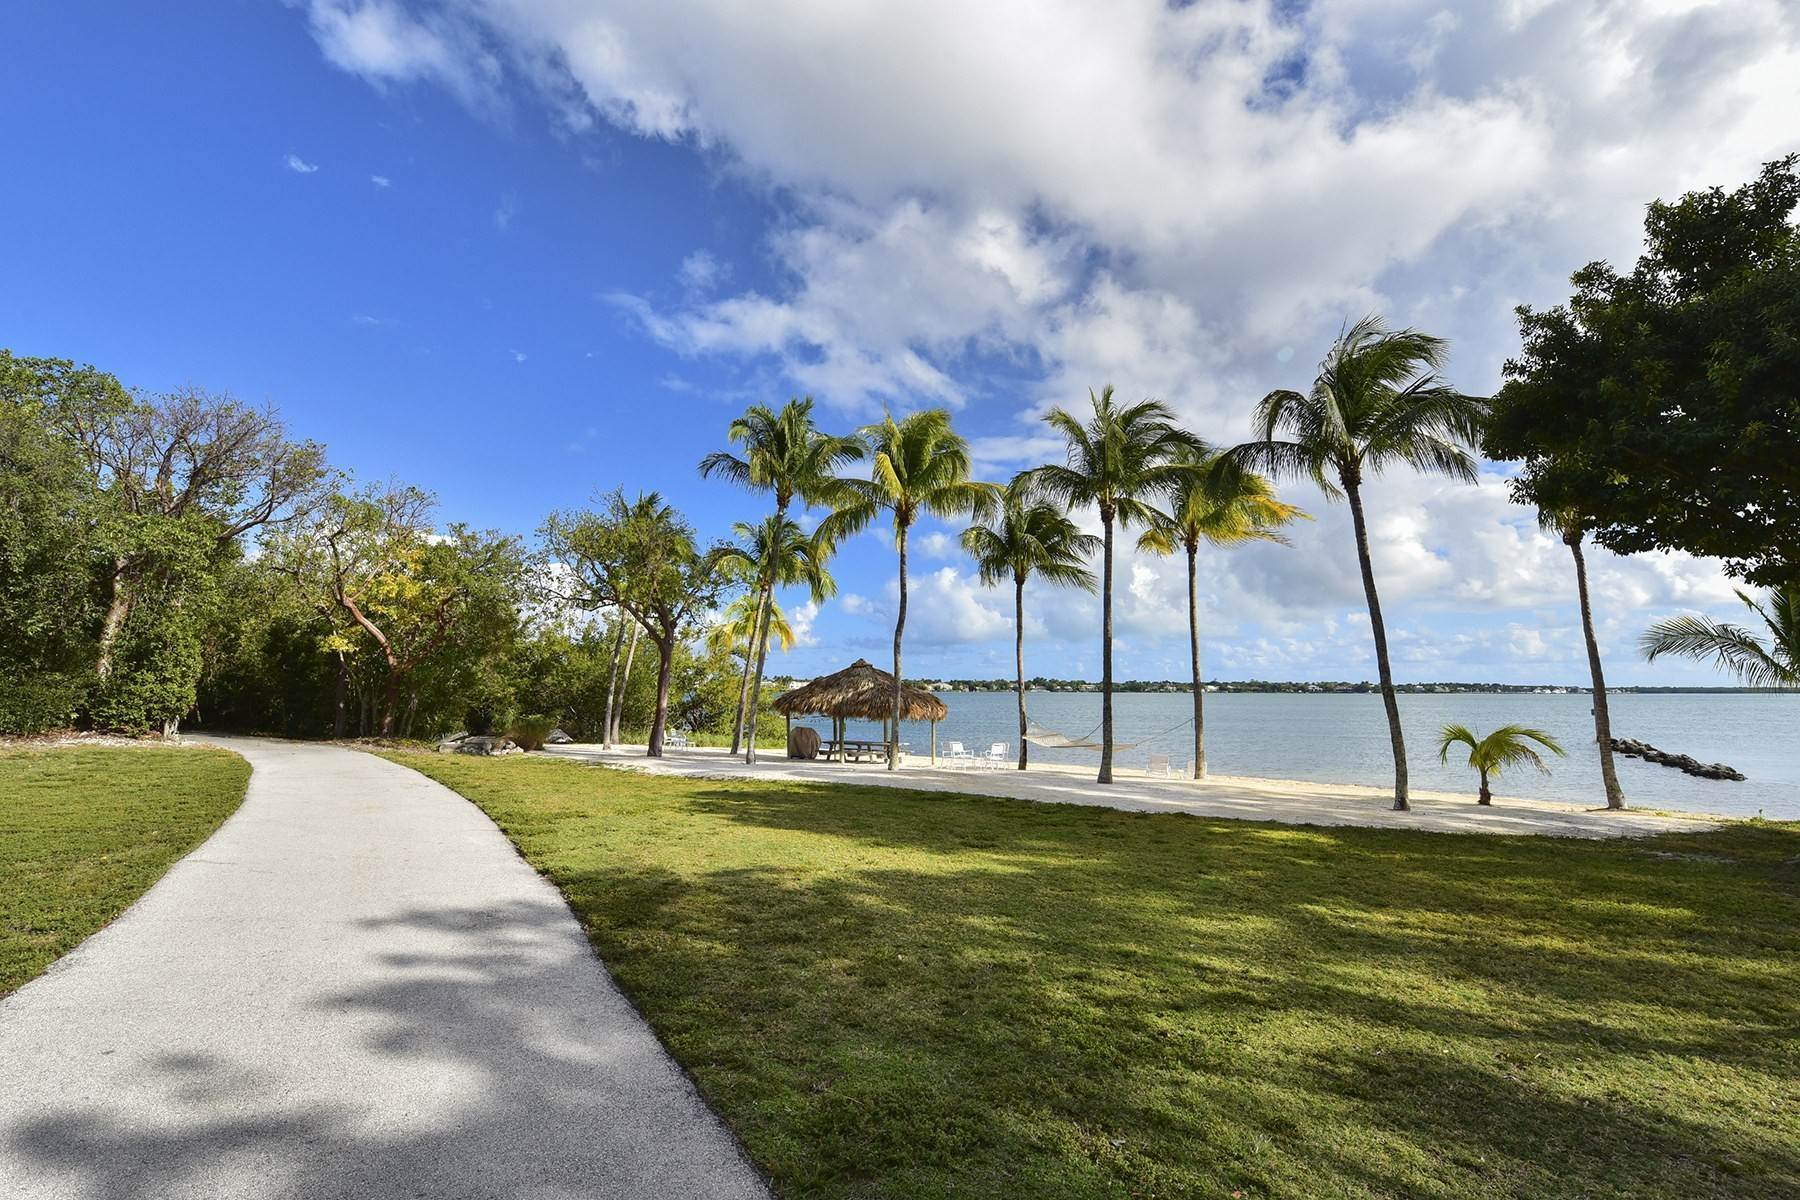 9. Property for Sale at Pumpkin Key - Private Island, Key Largo, FL Key Largo, Florida 33037 United States